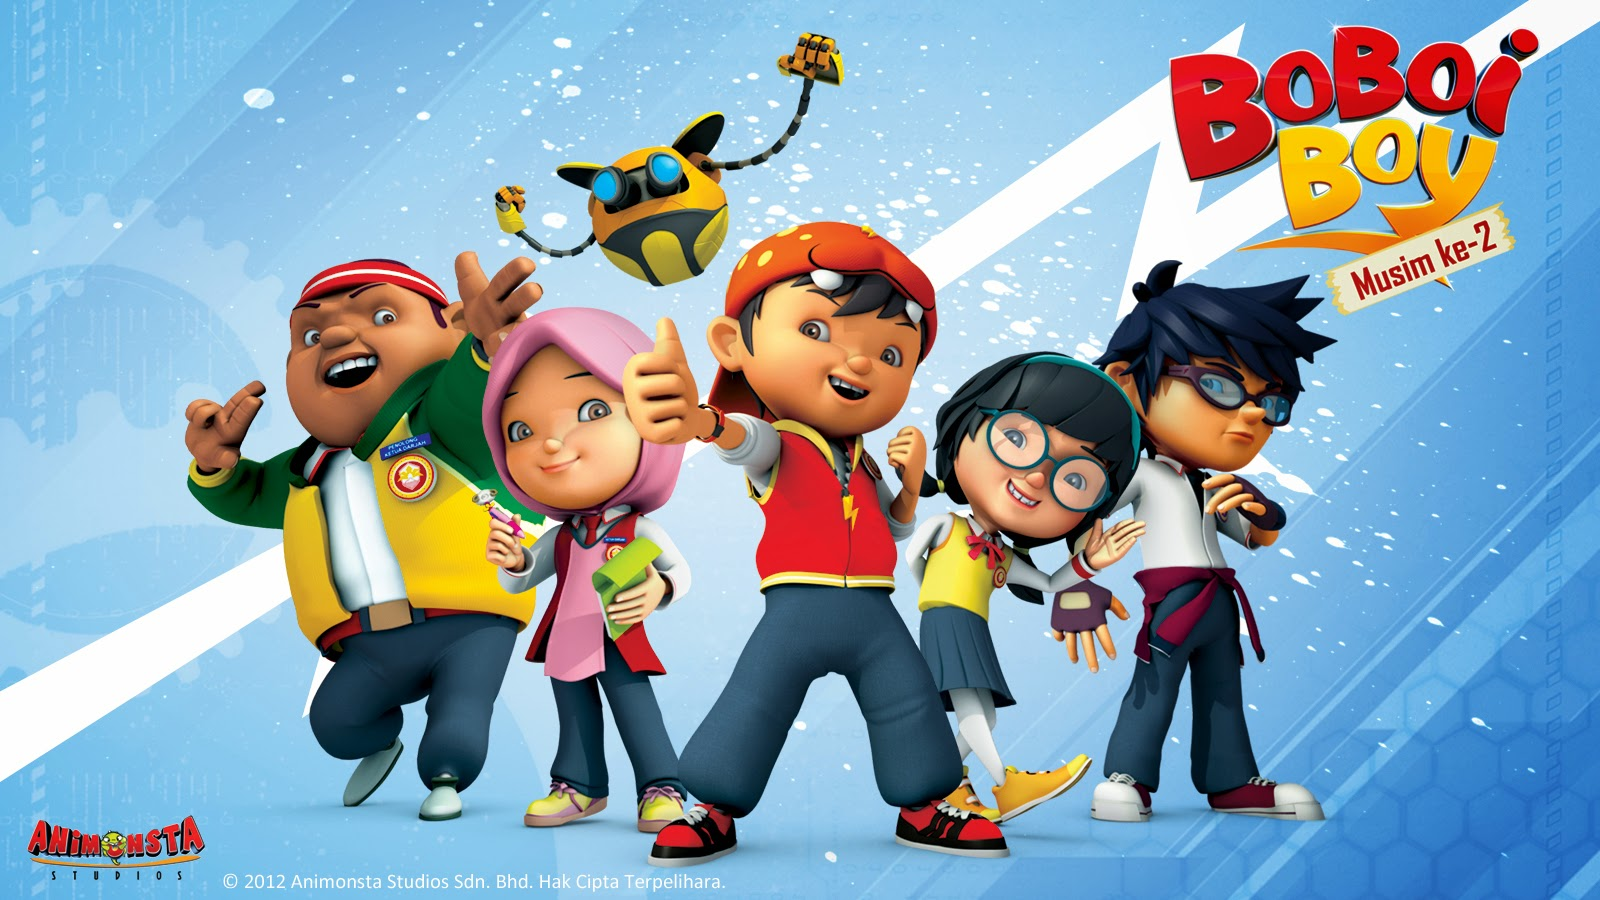 http://gallerycartoon.blogspot.com/2015/03/boboiboy-cartoon-gallery-4.html